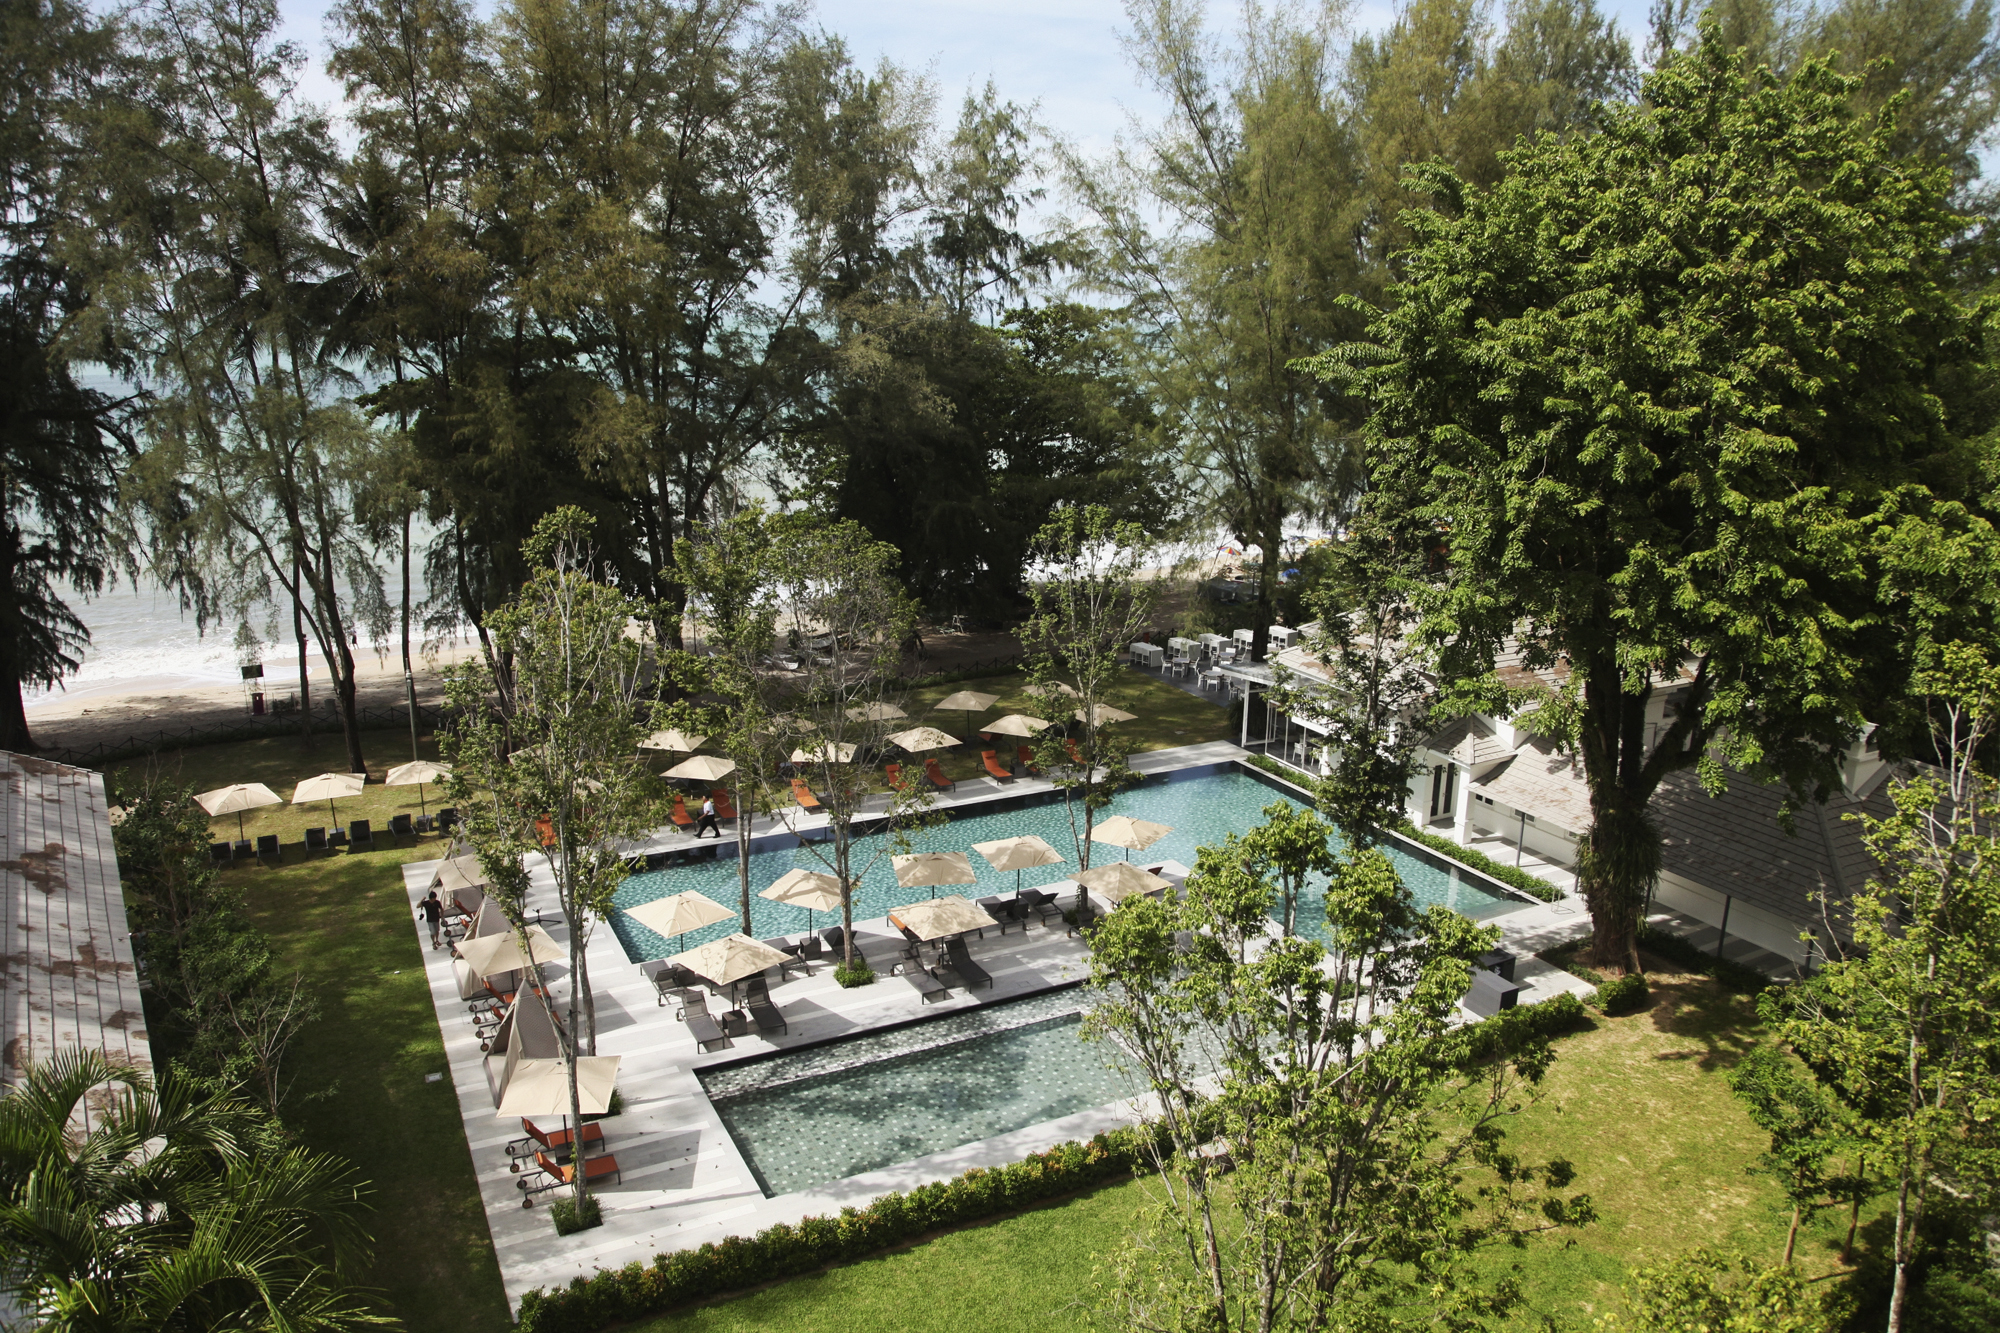 Best beach hotels in Penang